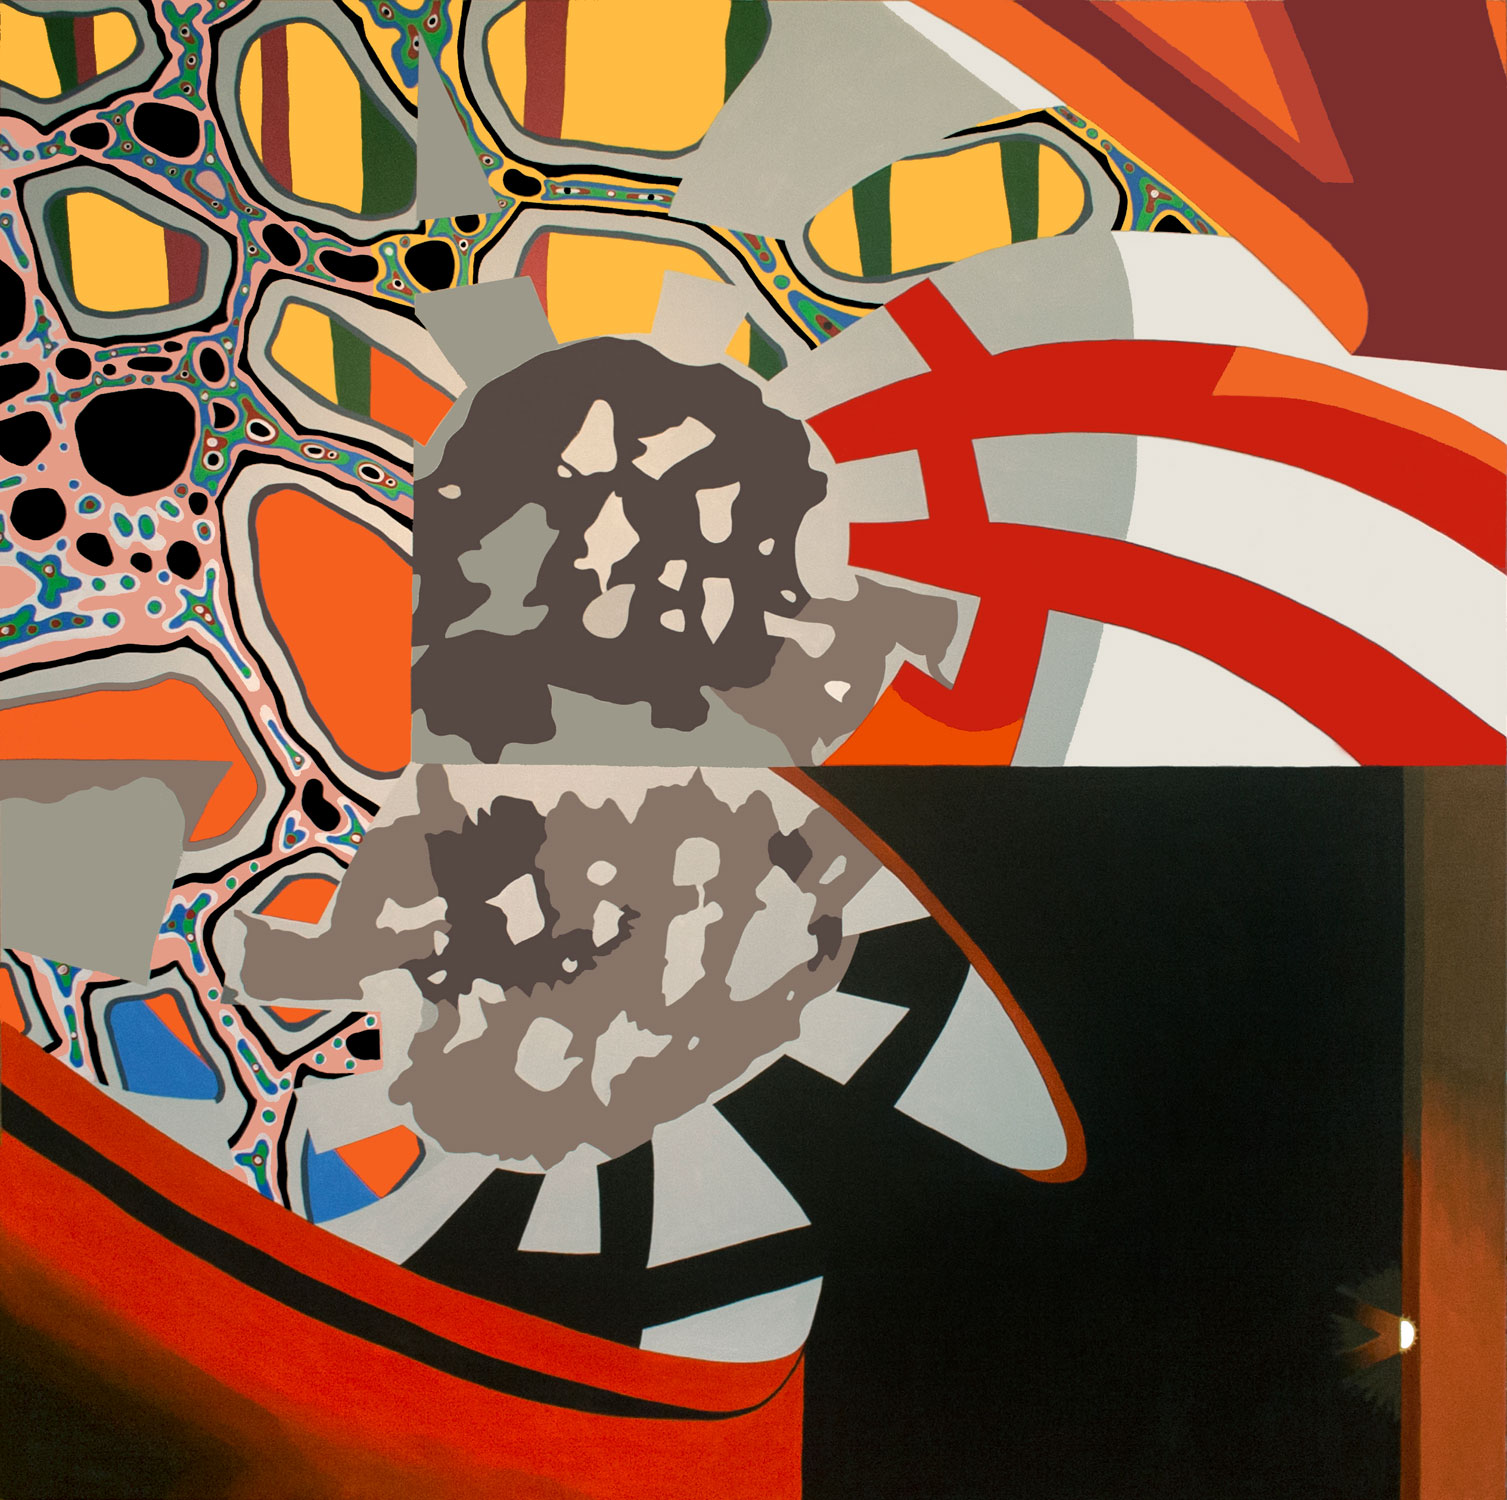 "Sunrise Over Swirling Yantras, acrylic on canvas, 72"" x 72"", 2012"